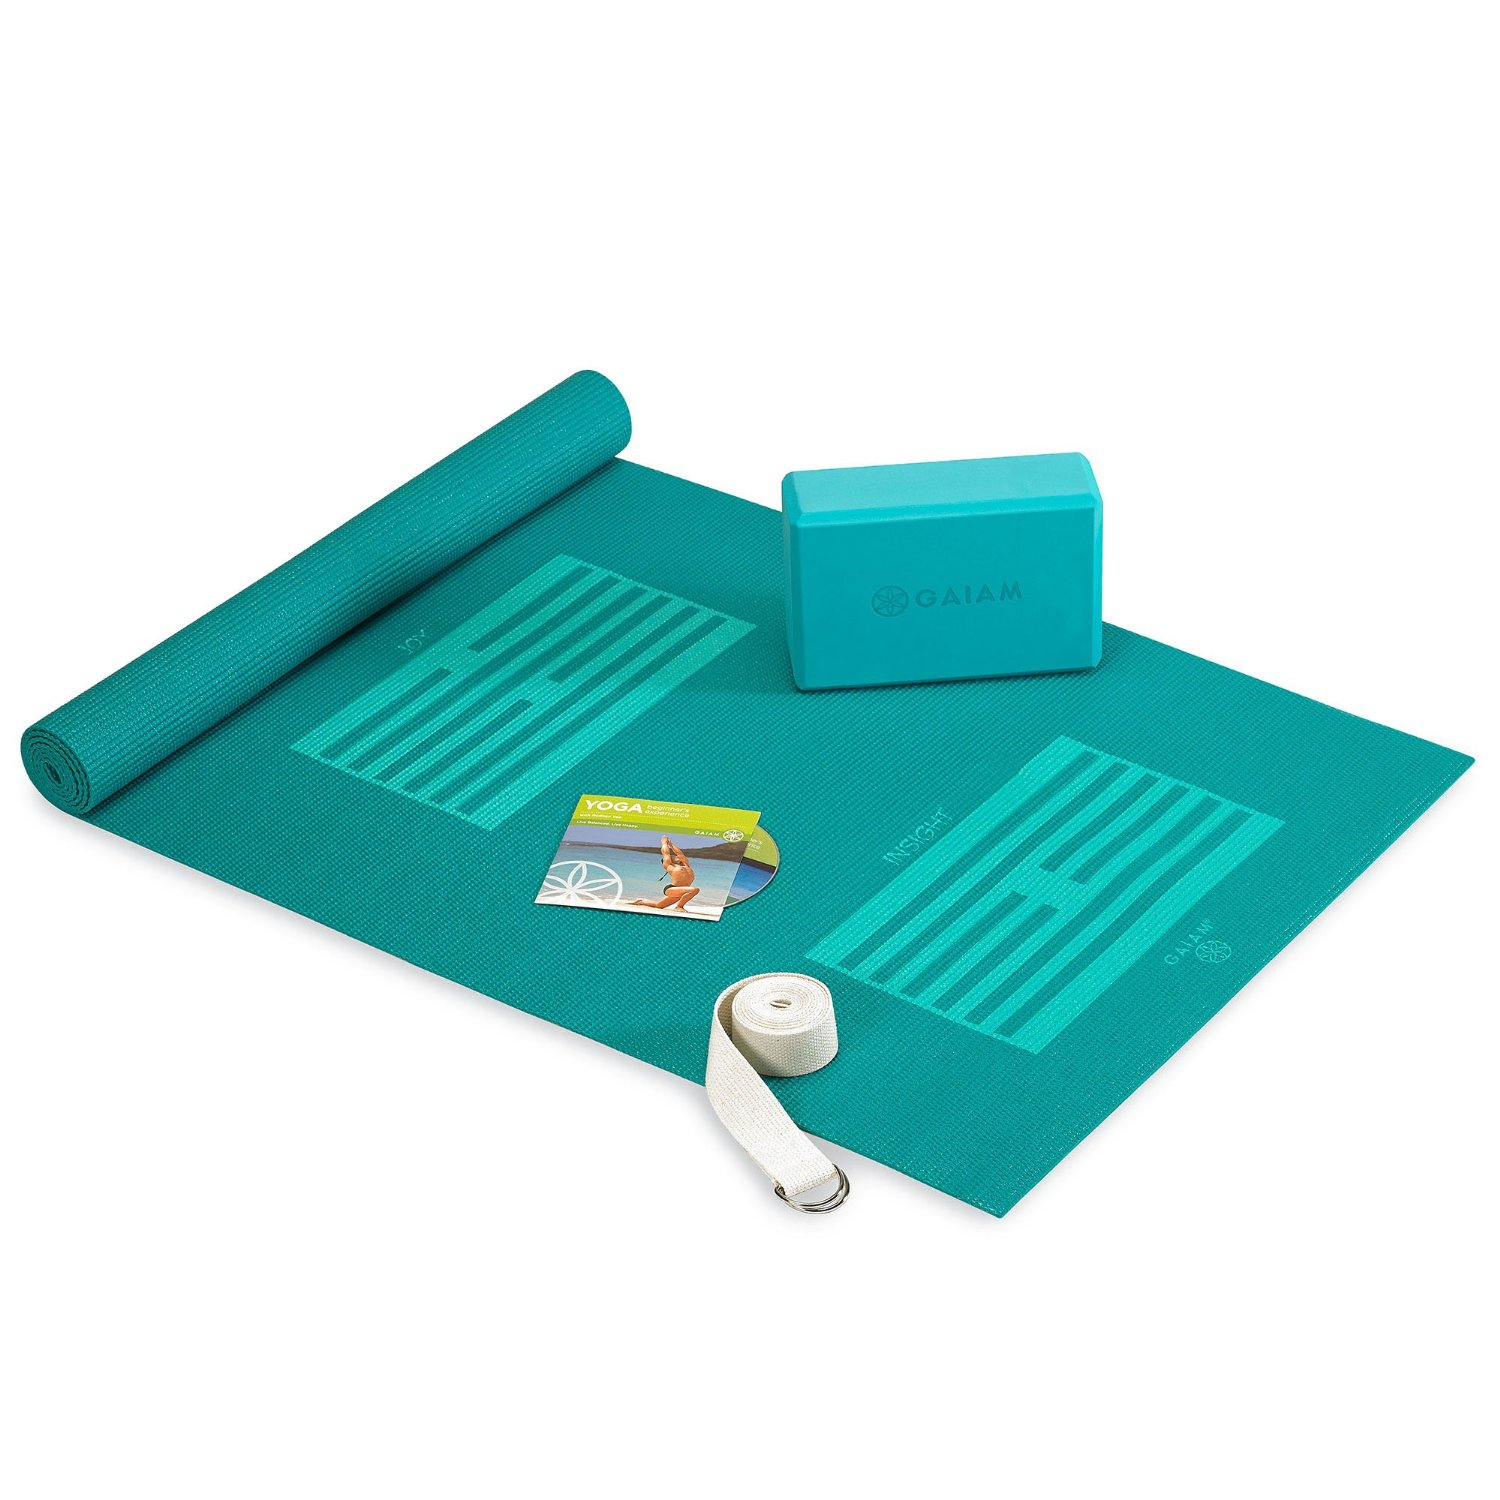 Gaiam starter kit yoga